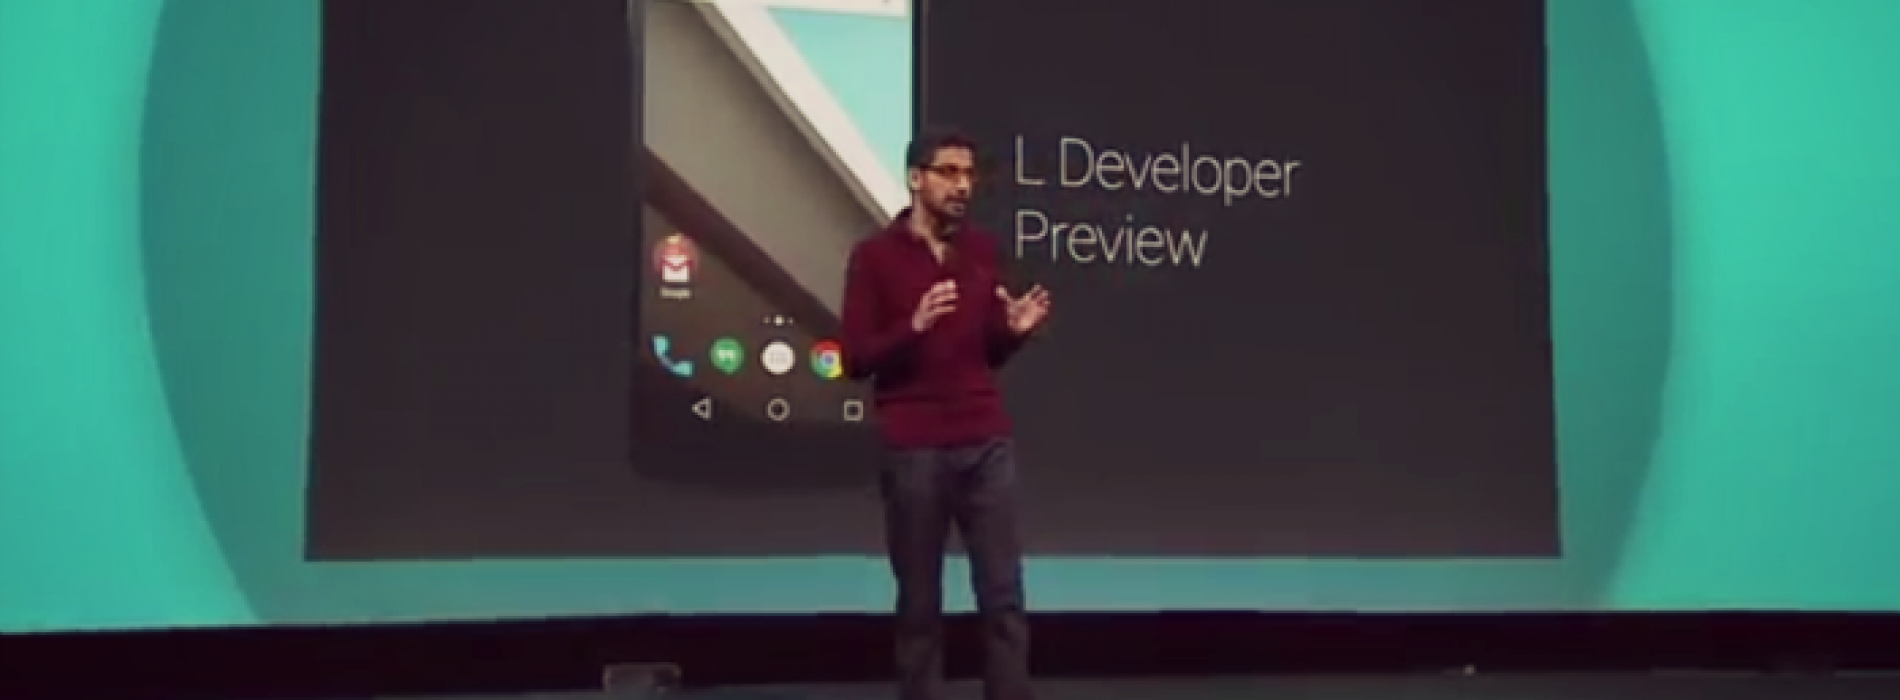 Google previews Android 'L' features